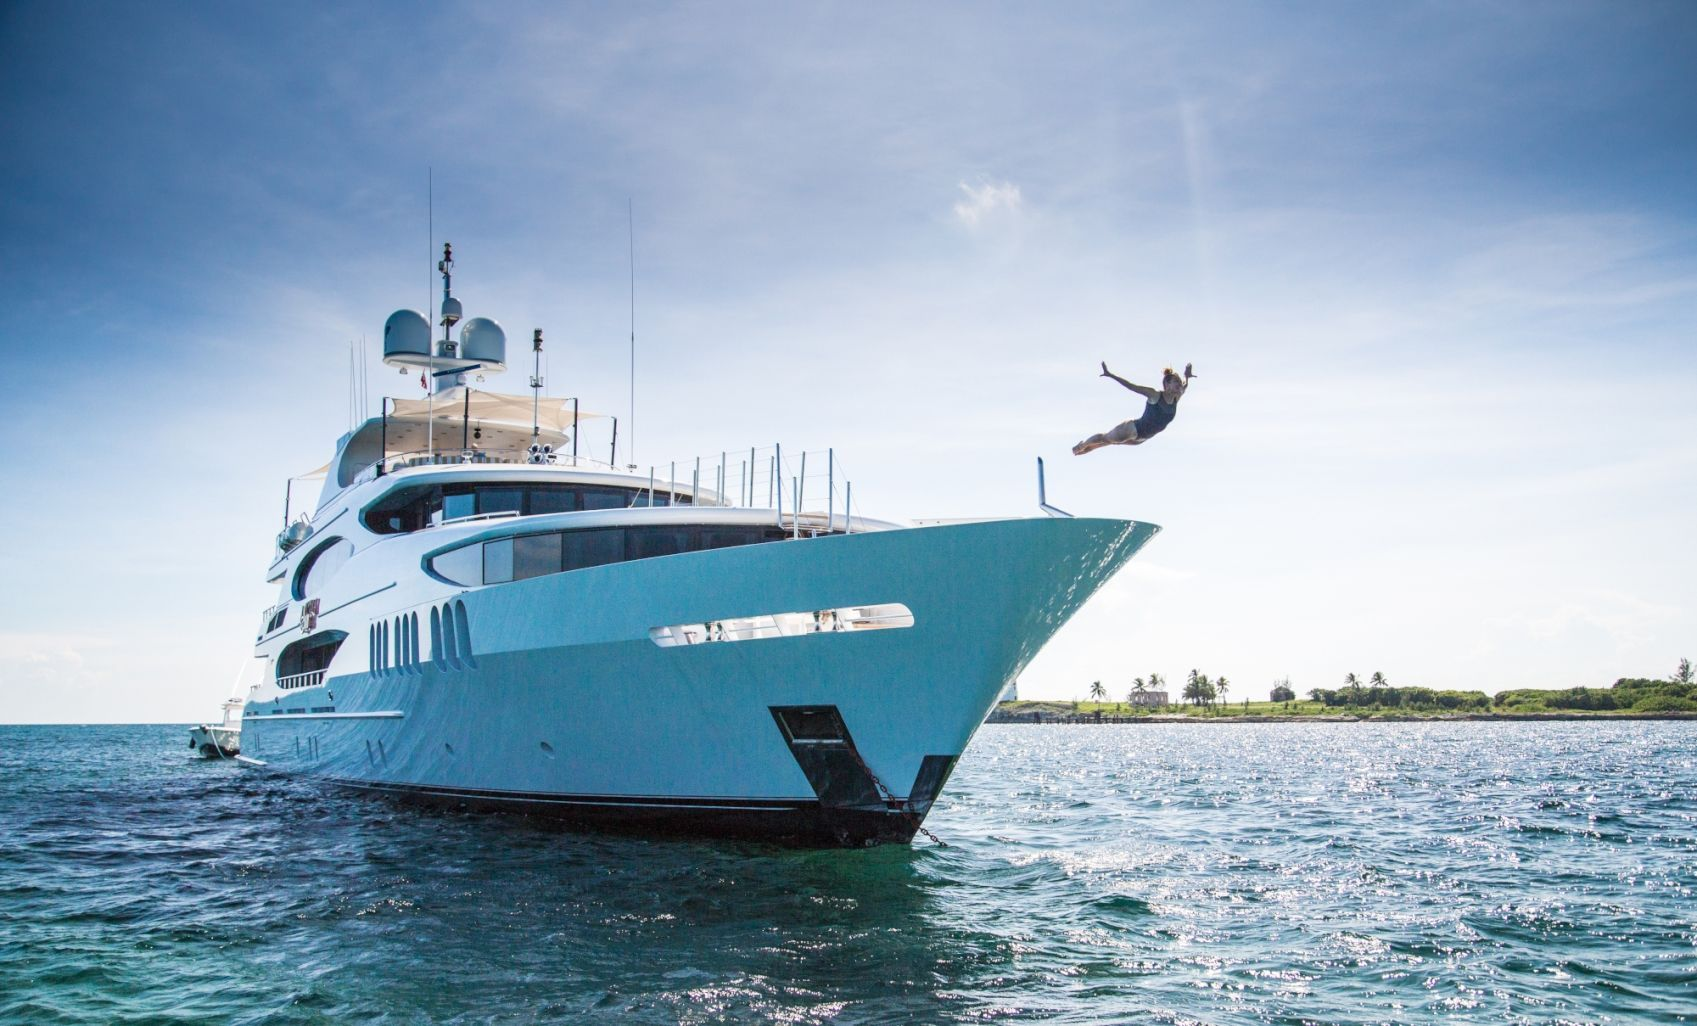 Dive into the pristine water of the Bahamas straight from your superyacht